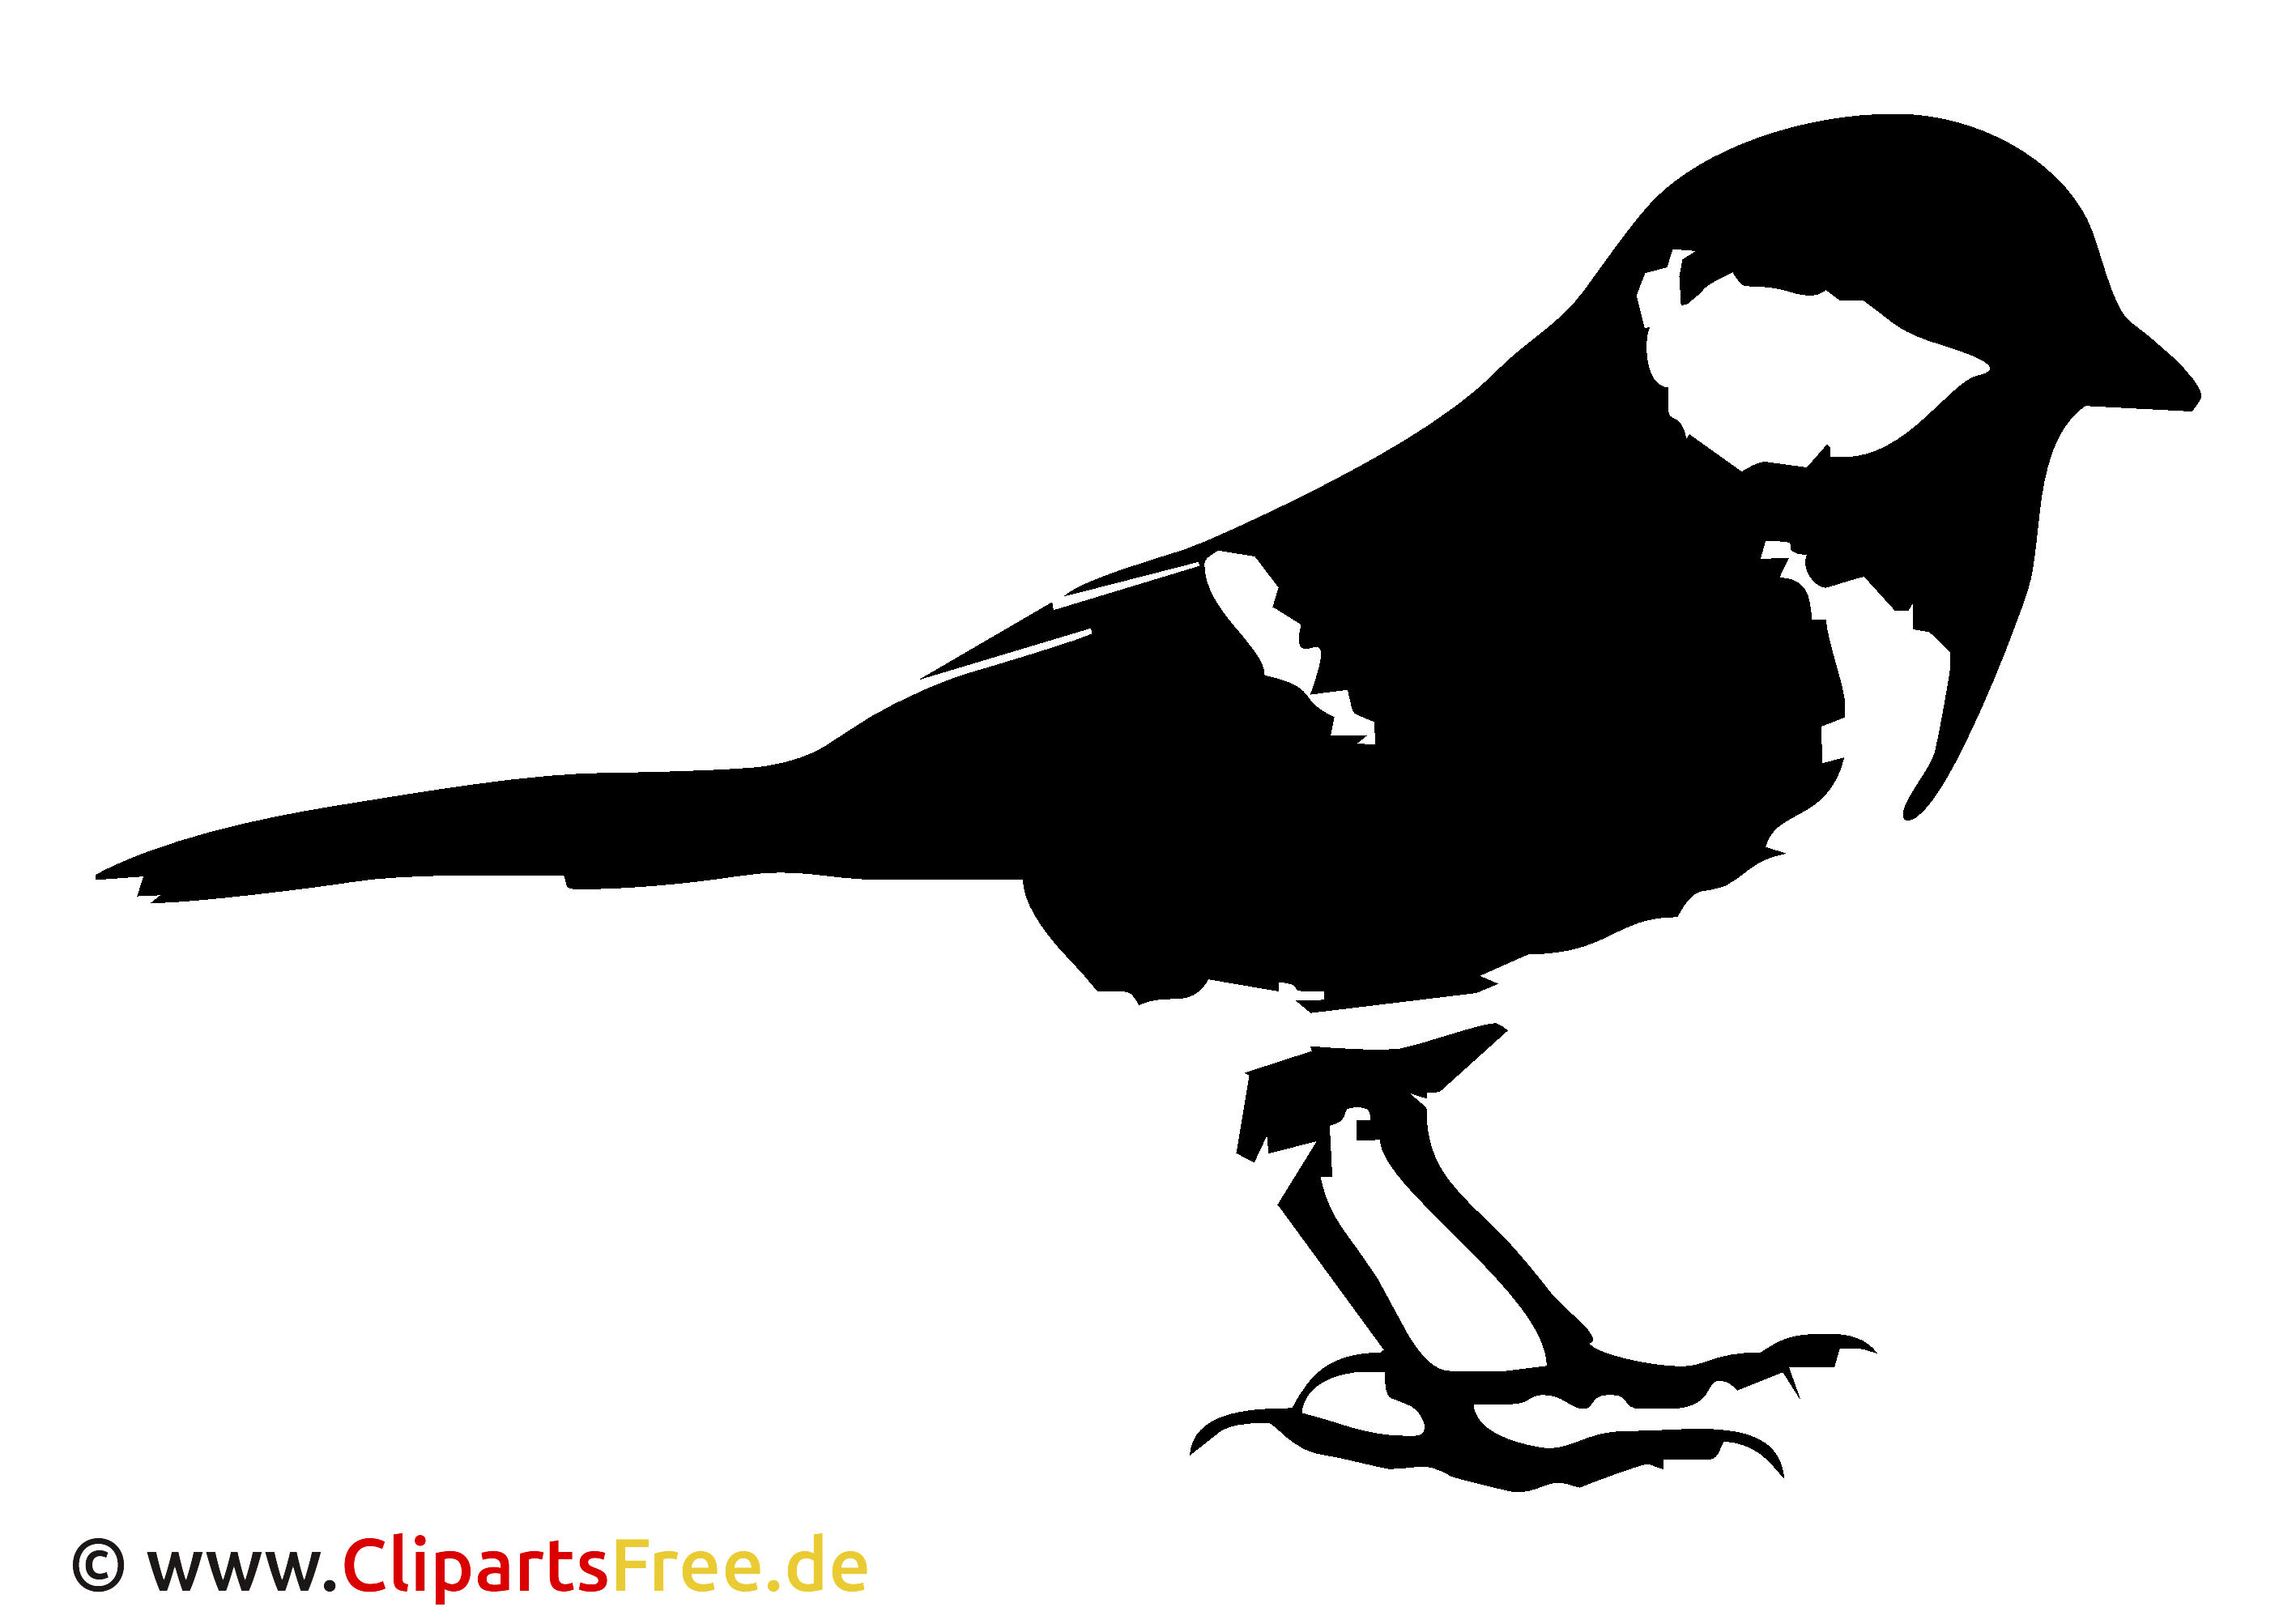 Spatz Clipart, Bild, Cartoon, Grafik, Illustration